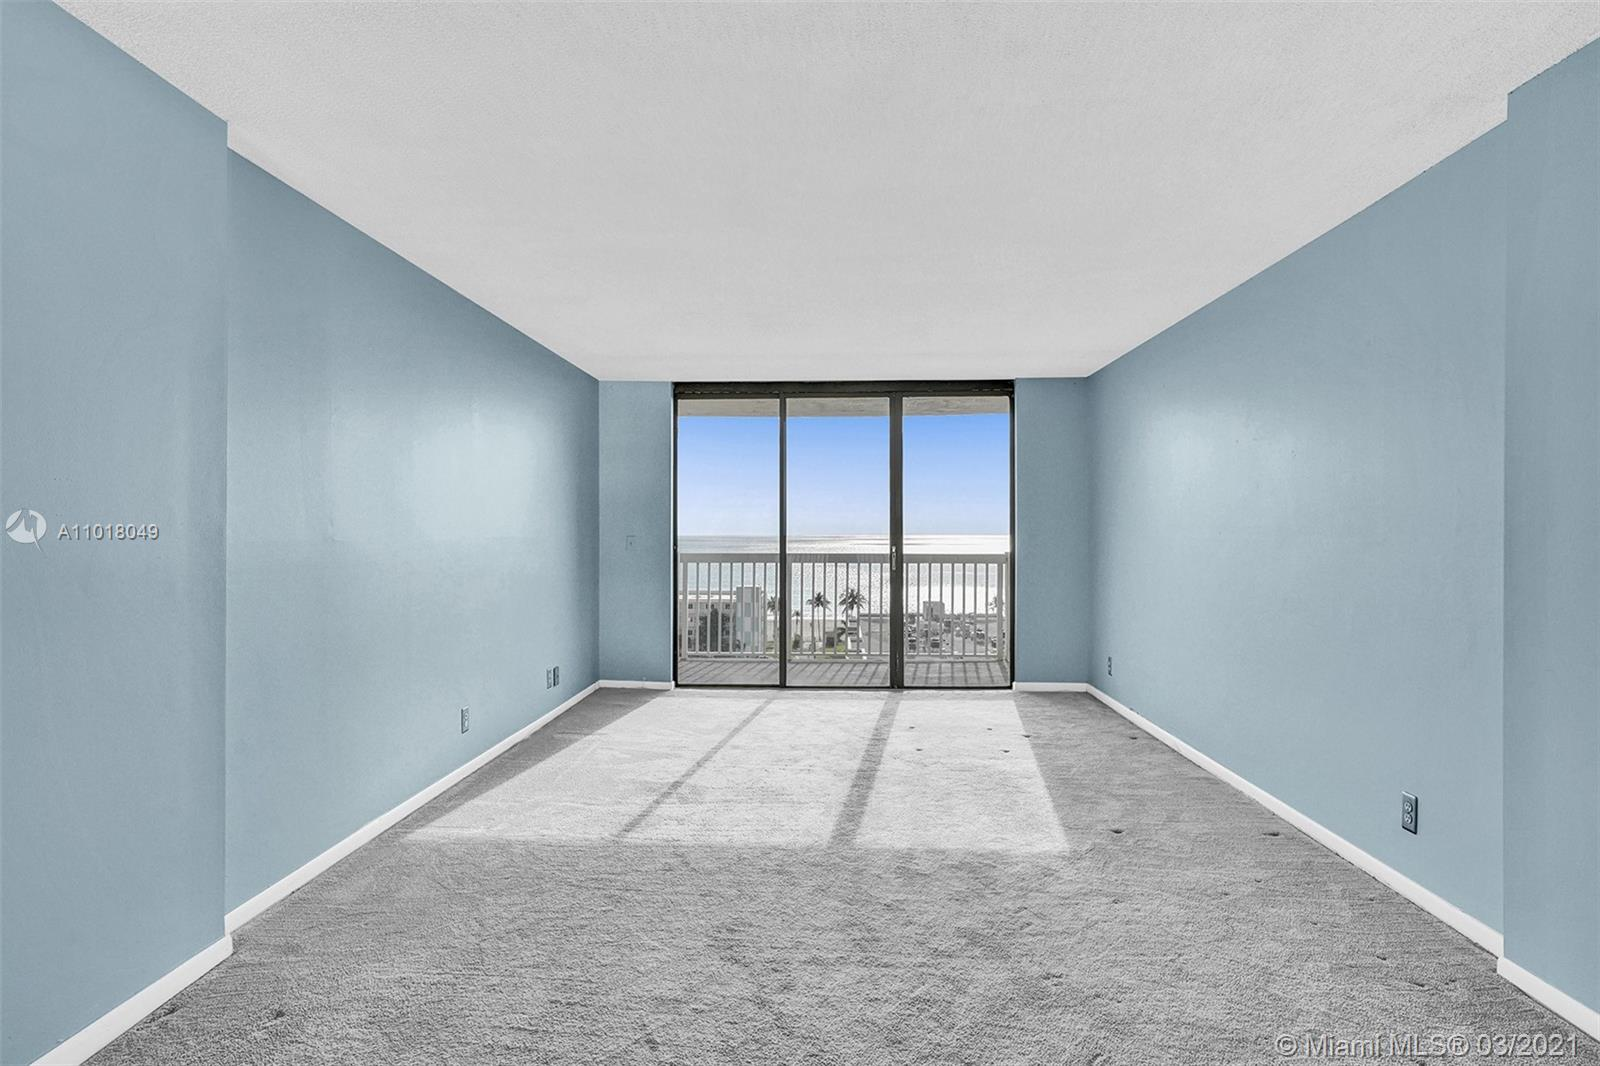 Photo of 1500 Ocean Dr #11I, Hollywood, Florida, 33019 - Living room